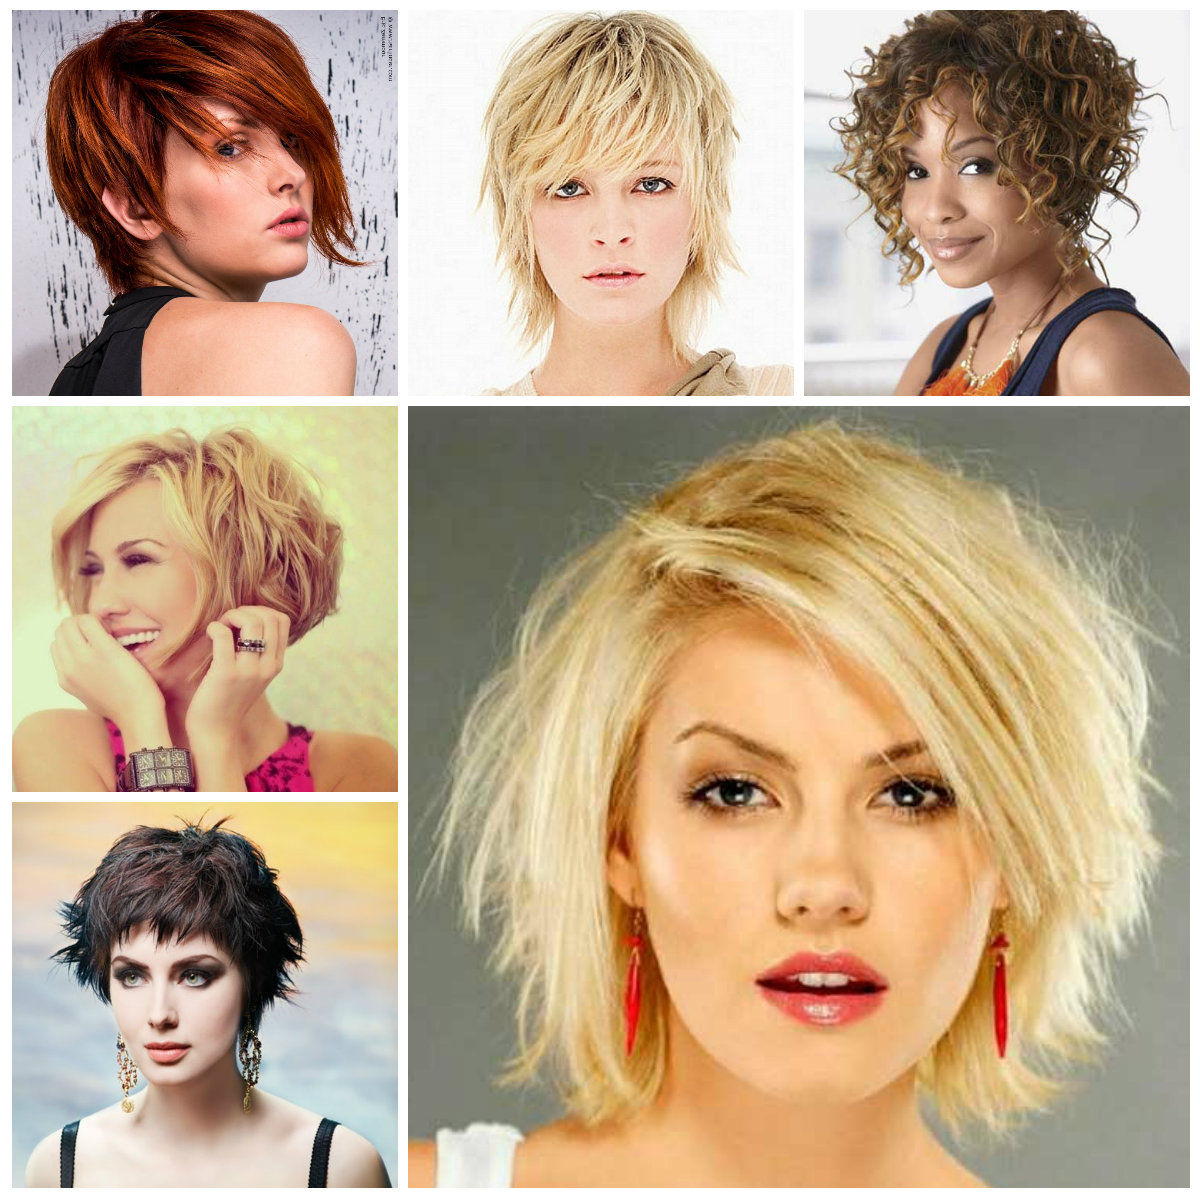 Hairstyles For Women 2019, Haircuts For Long (View 12 of 20)